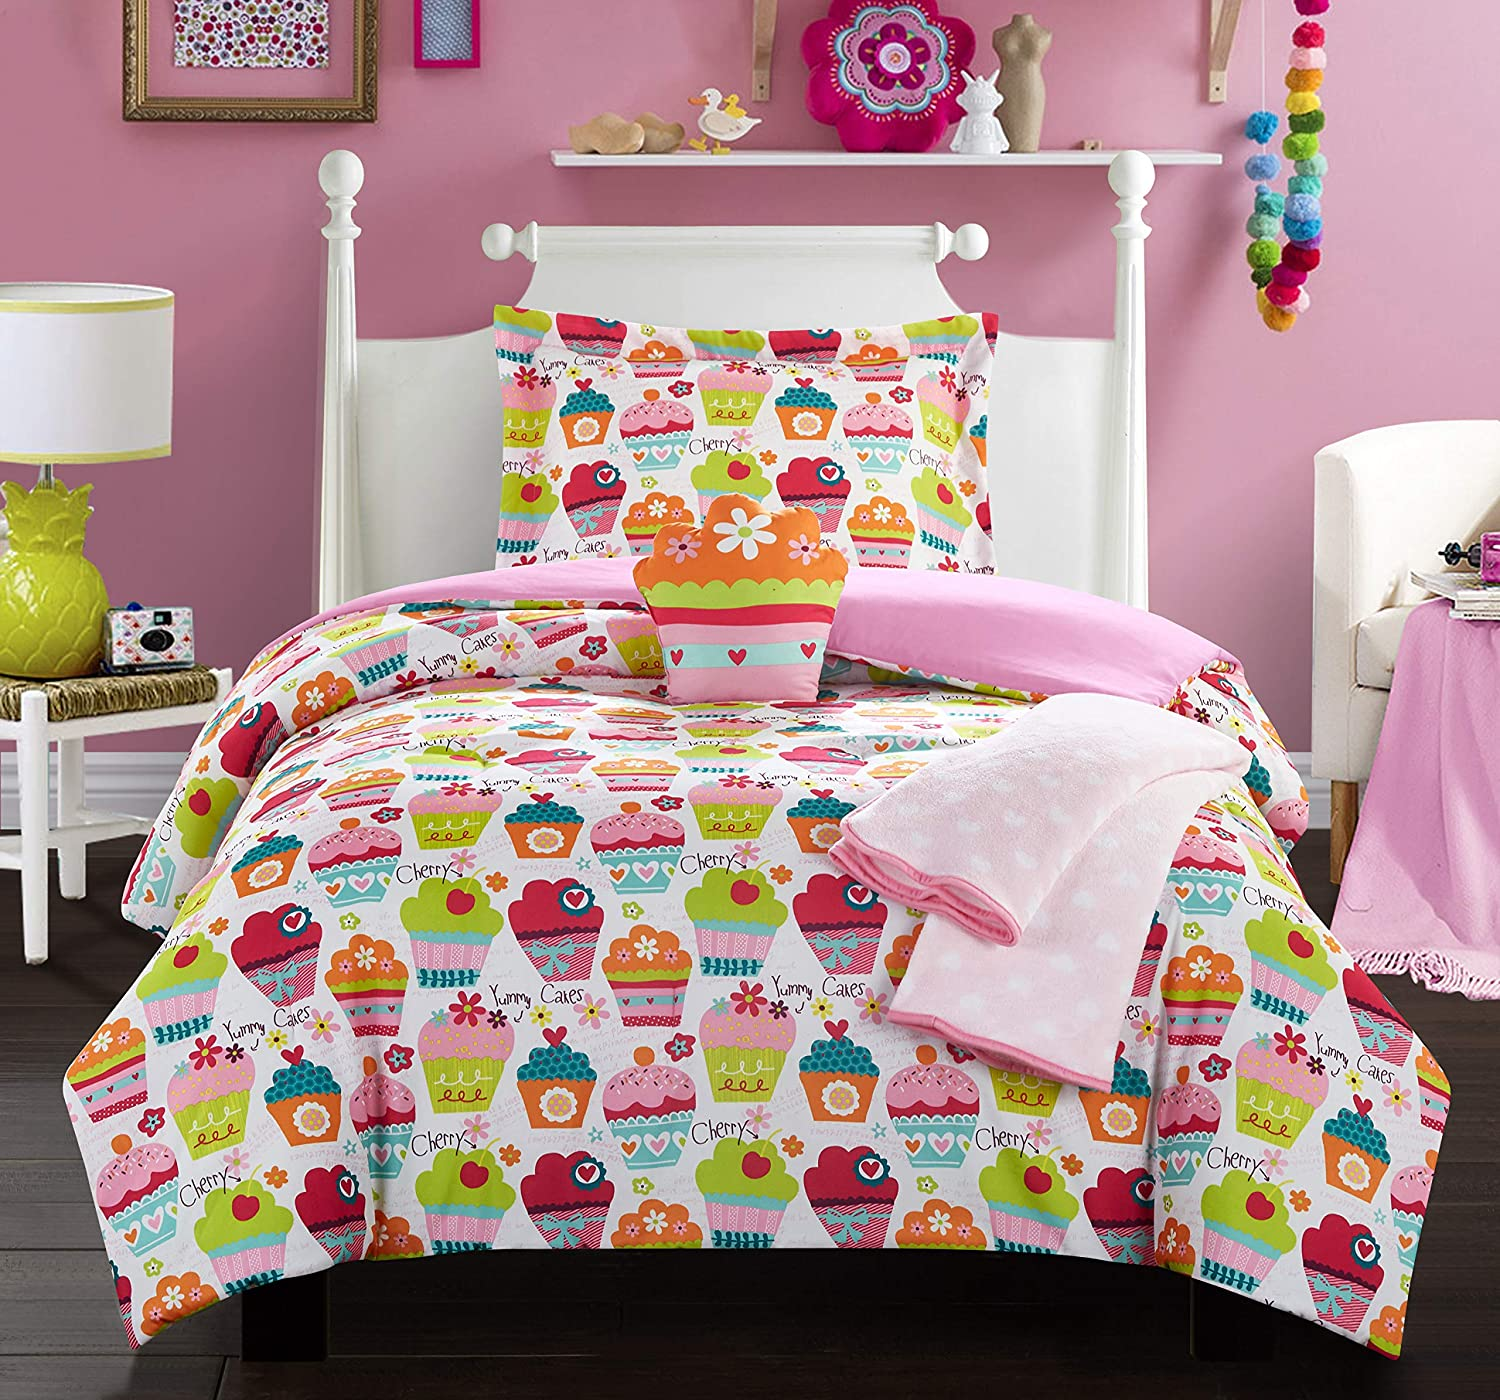 Chic Home Tasty Muffin 4 Piece Comforter Set Sweet Dreams Theme Pattern Print Youth Design Bedding-Throw Blanket Decorative Pillow Sham Included, Twin